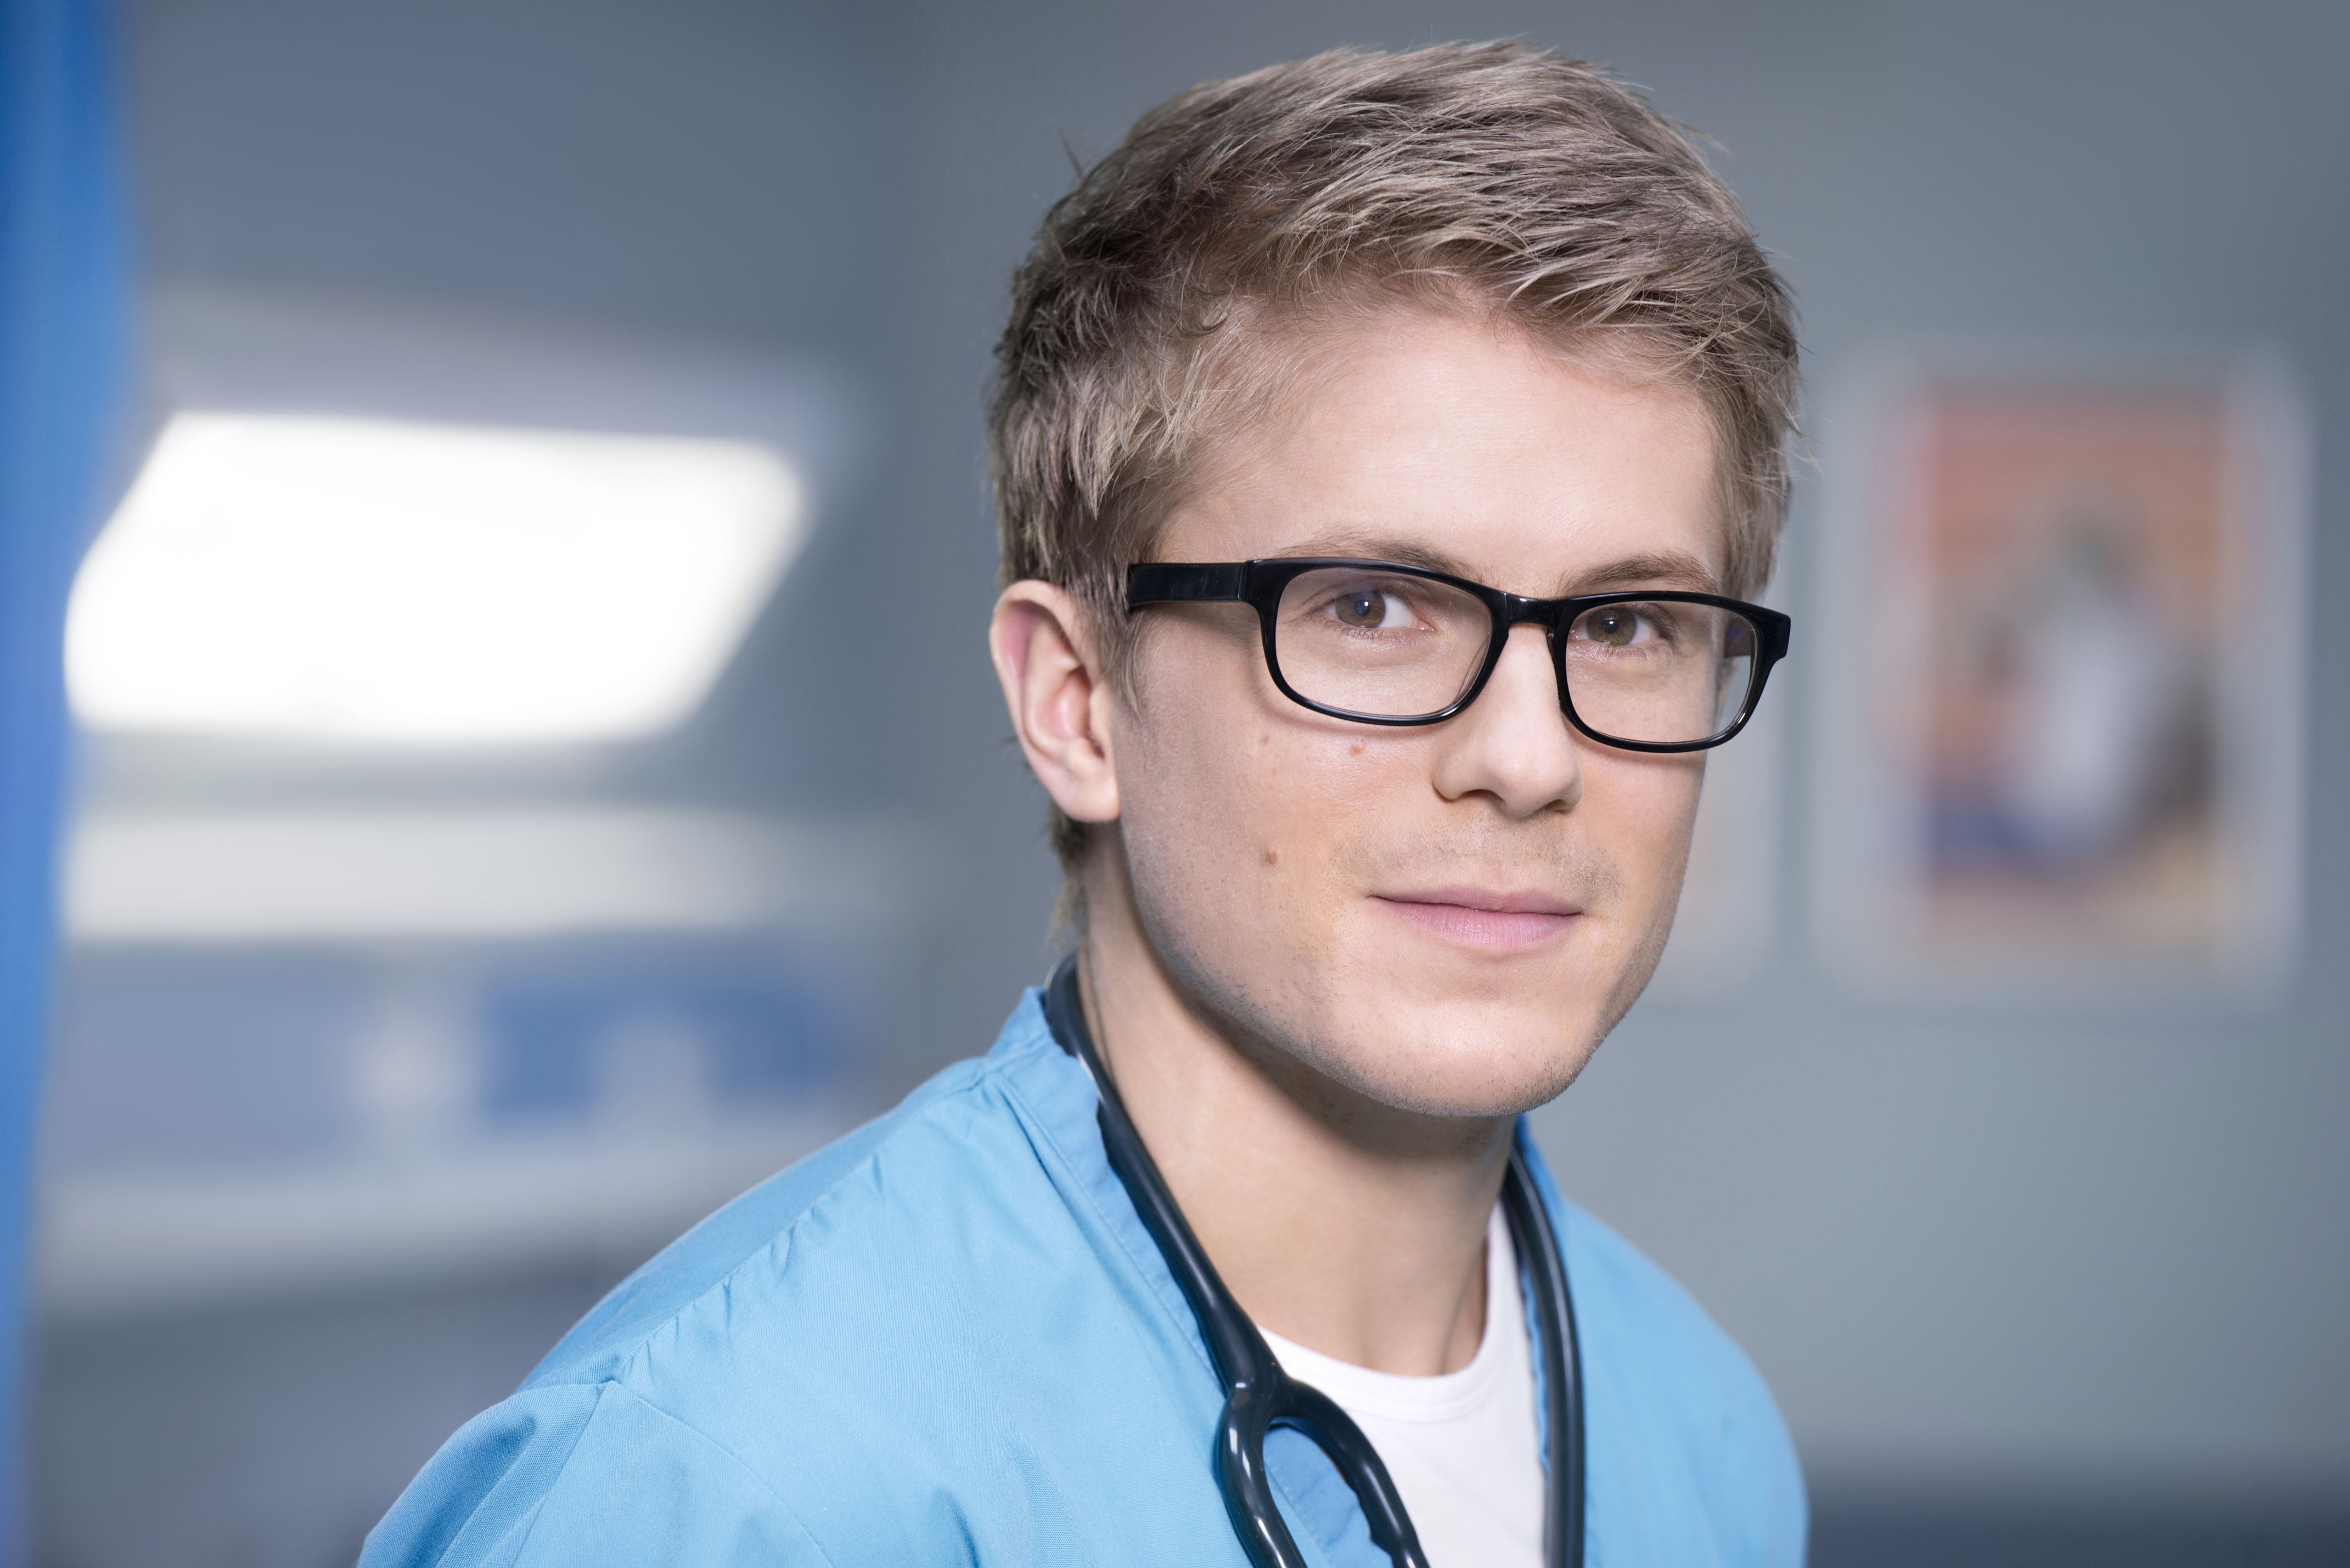 Casualty cast list – who plays the doctors and nurses on the BBC One